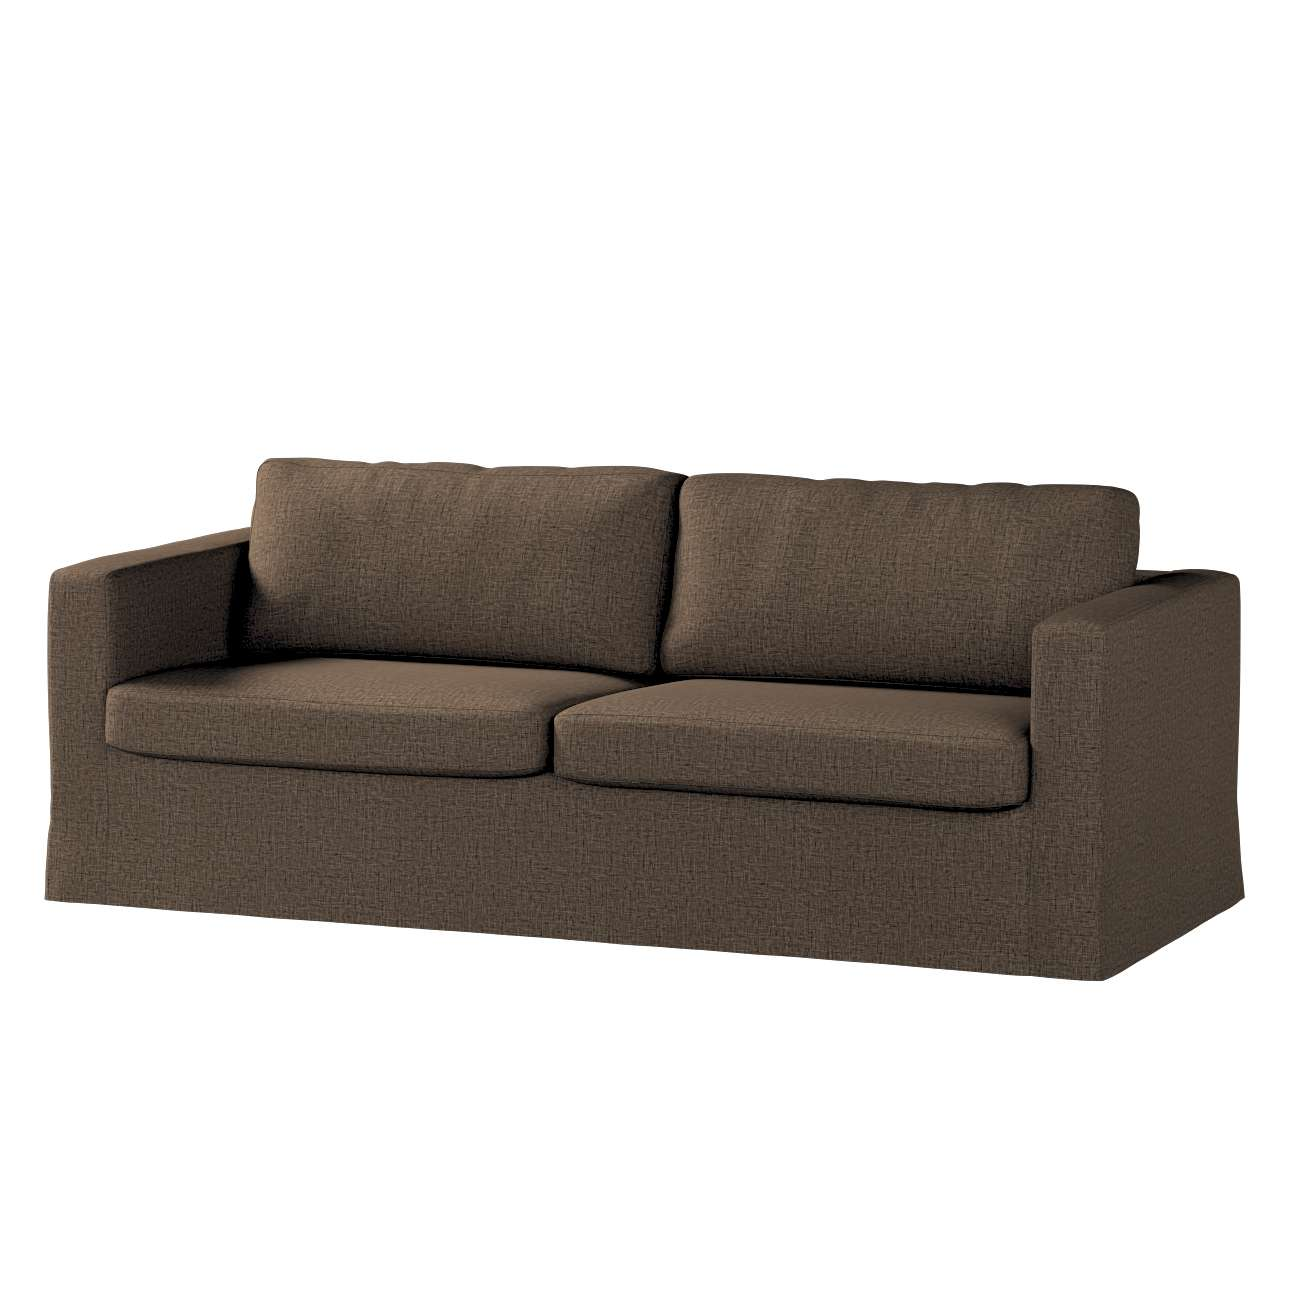 Floor length Karlstad 3-seater sofa cover in collection Living, fabric: 106-92